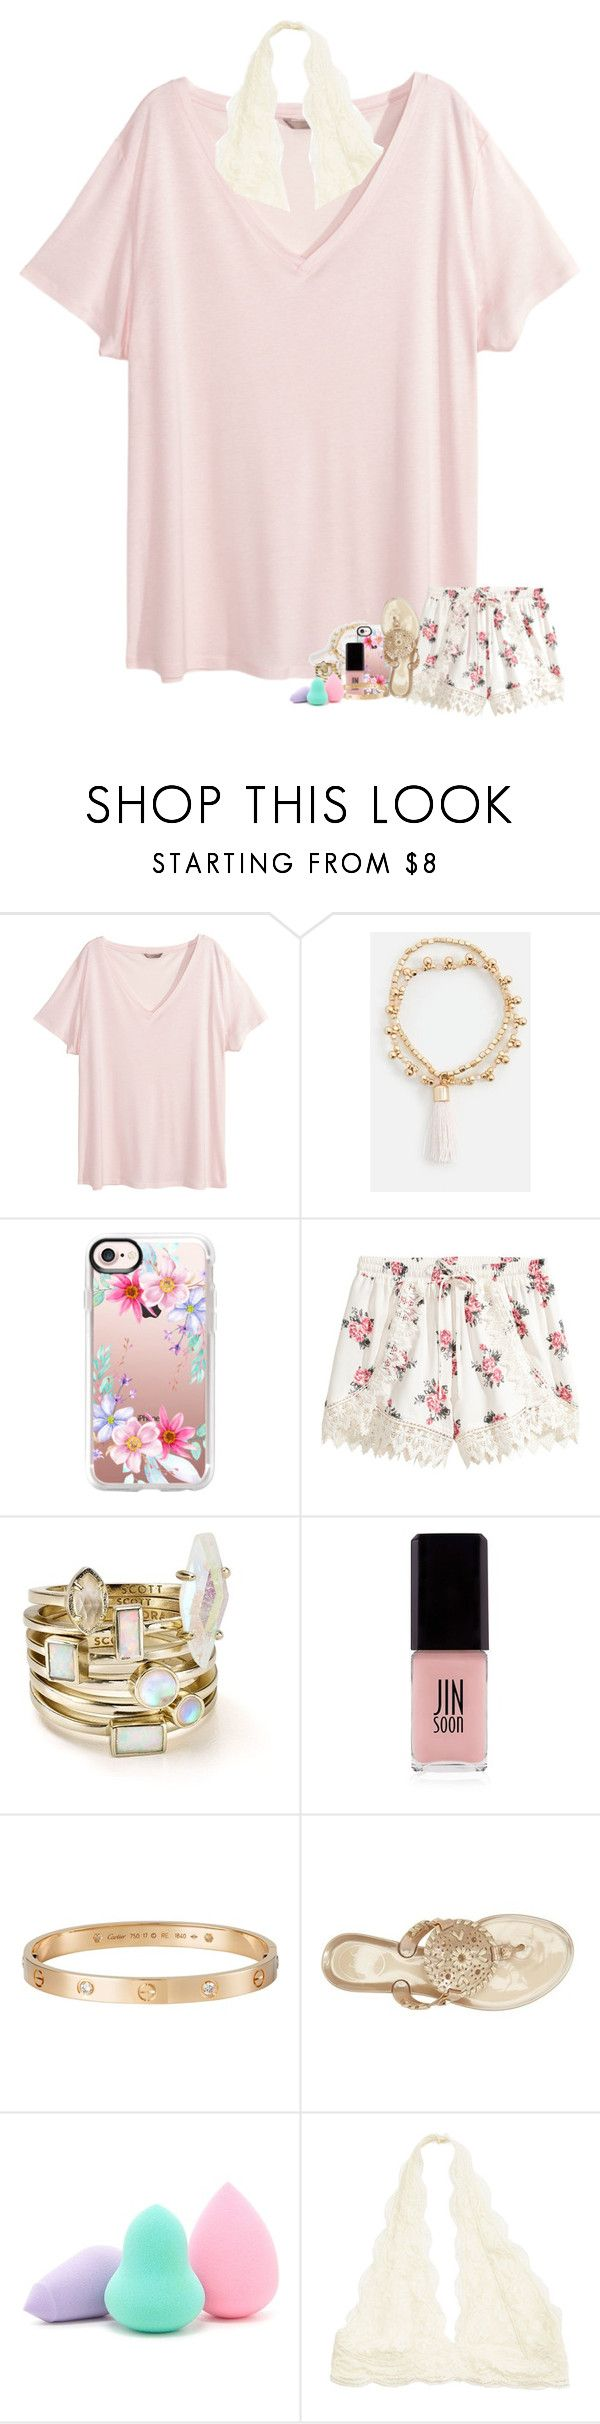 """& maybe we'll work it out"" by madelinelurene ❤ liked on Polyvore featuring H&M, JustFab, Casetify, Kendra Scott, JINsoon, Cartier, Jack Rogers and Forever 21"